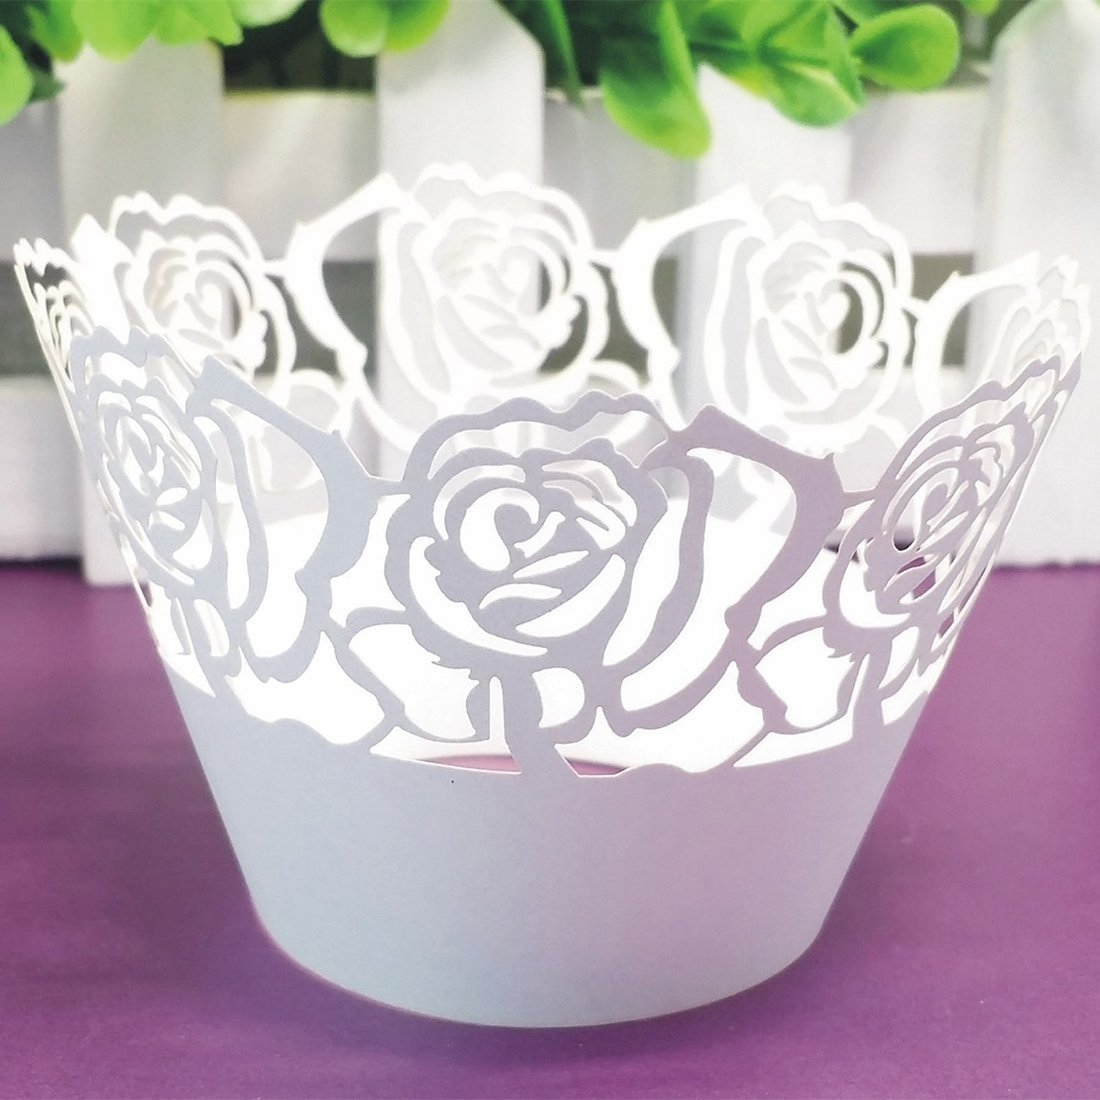 12Pcs Pearly Paper Rose Design Vine Lace Cup Cake Wrappers Case Party Birthday Decorations Home Luwu-Store 3981053